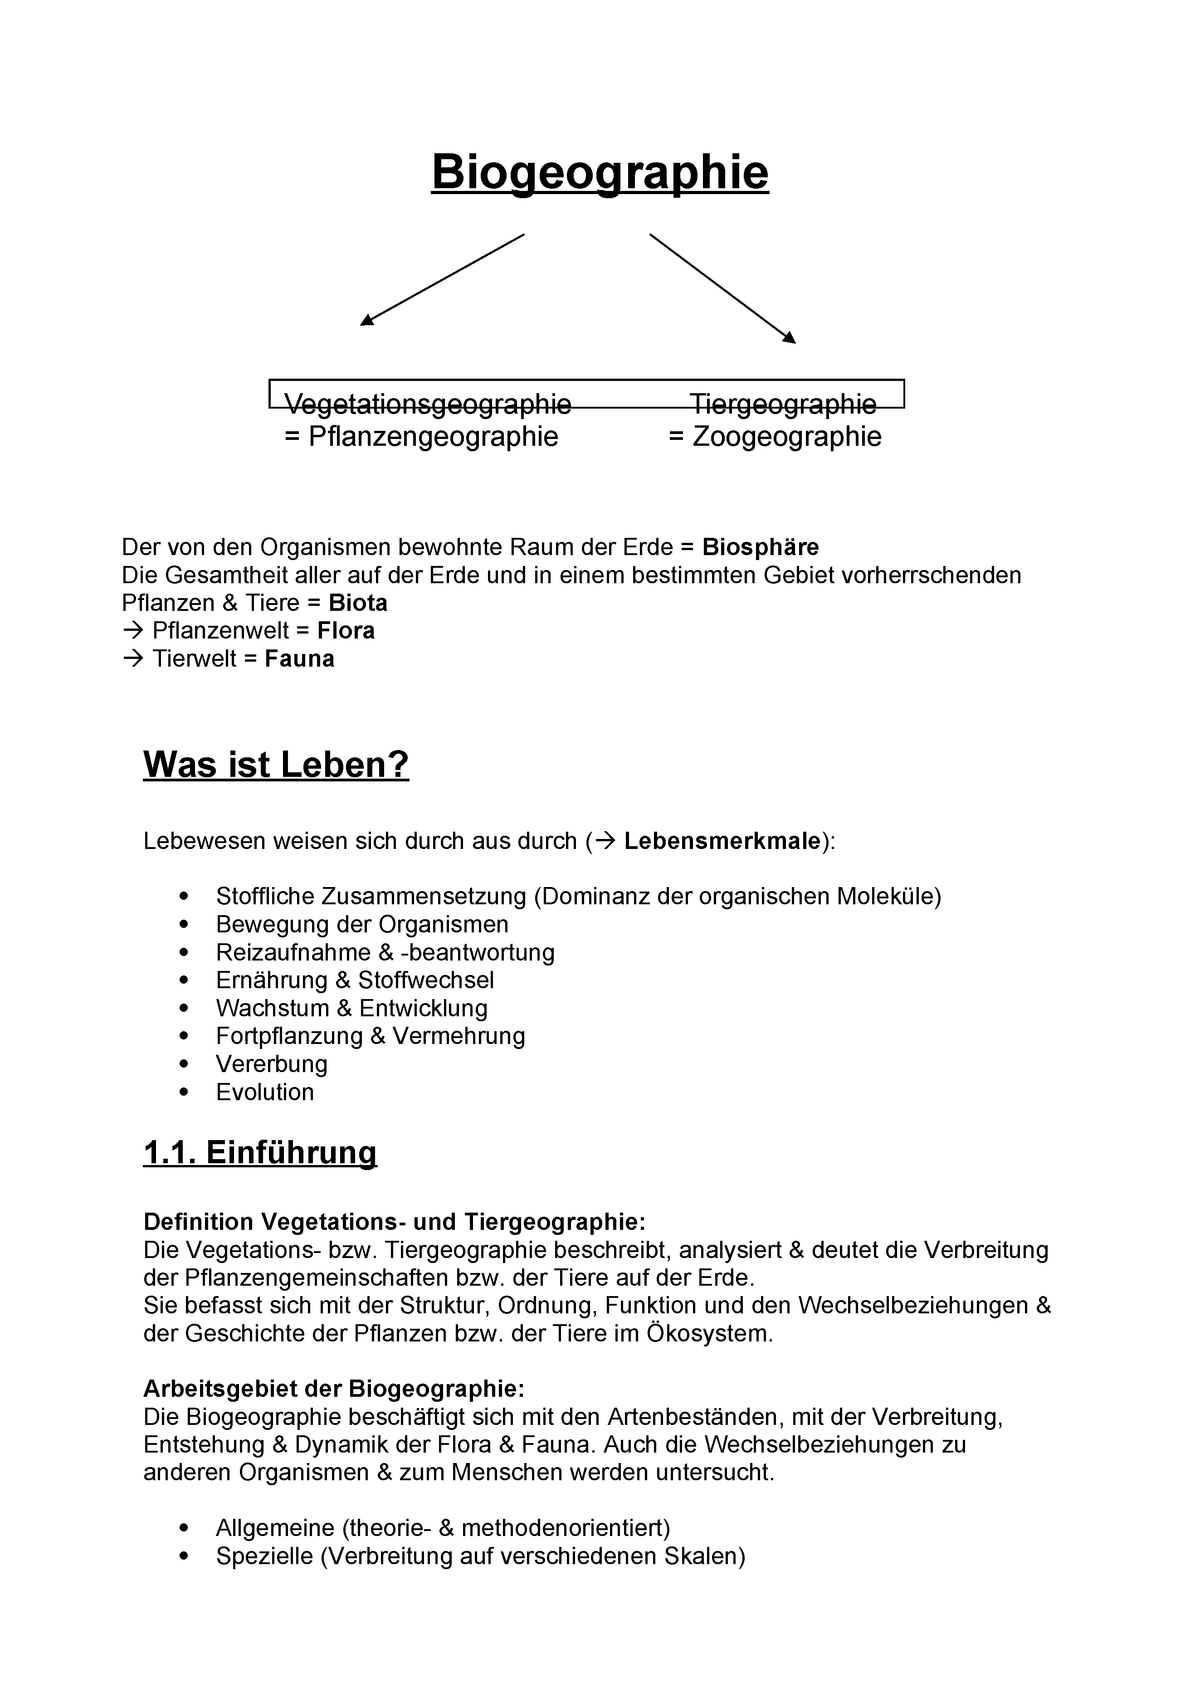 Definition von absoluter Datierung in der Biologie